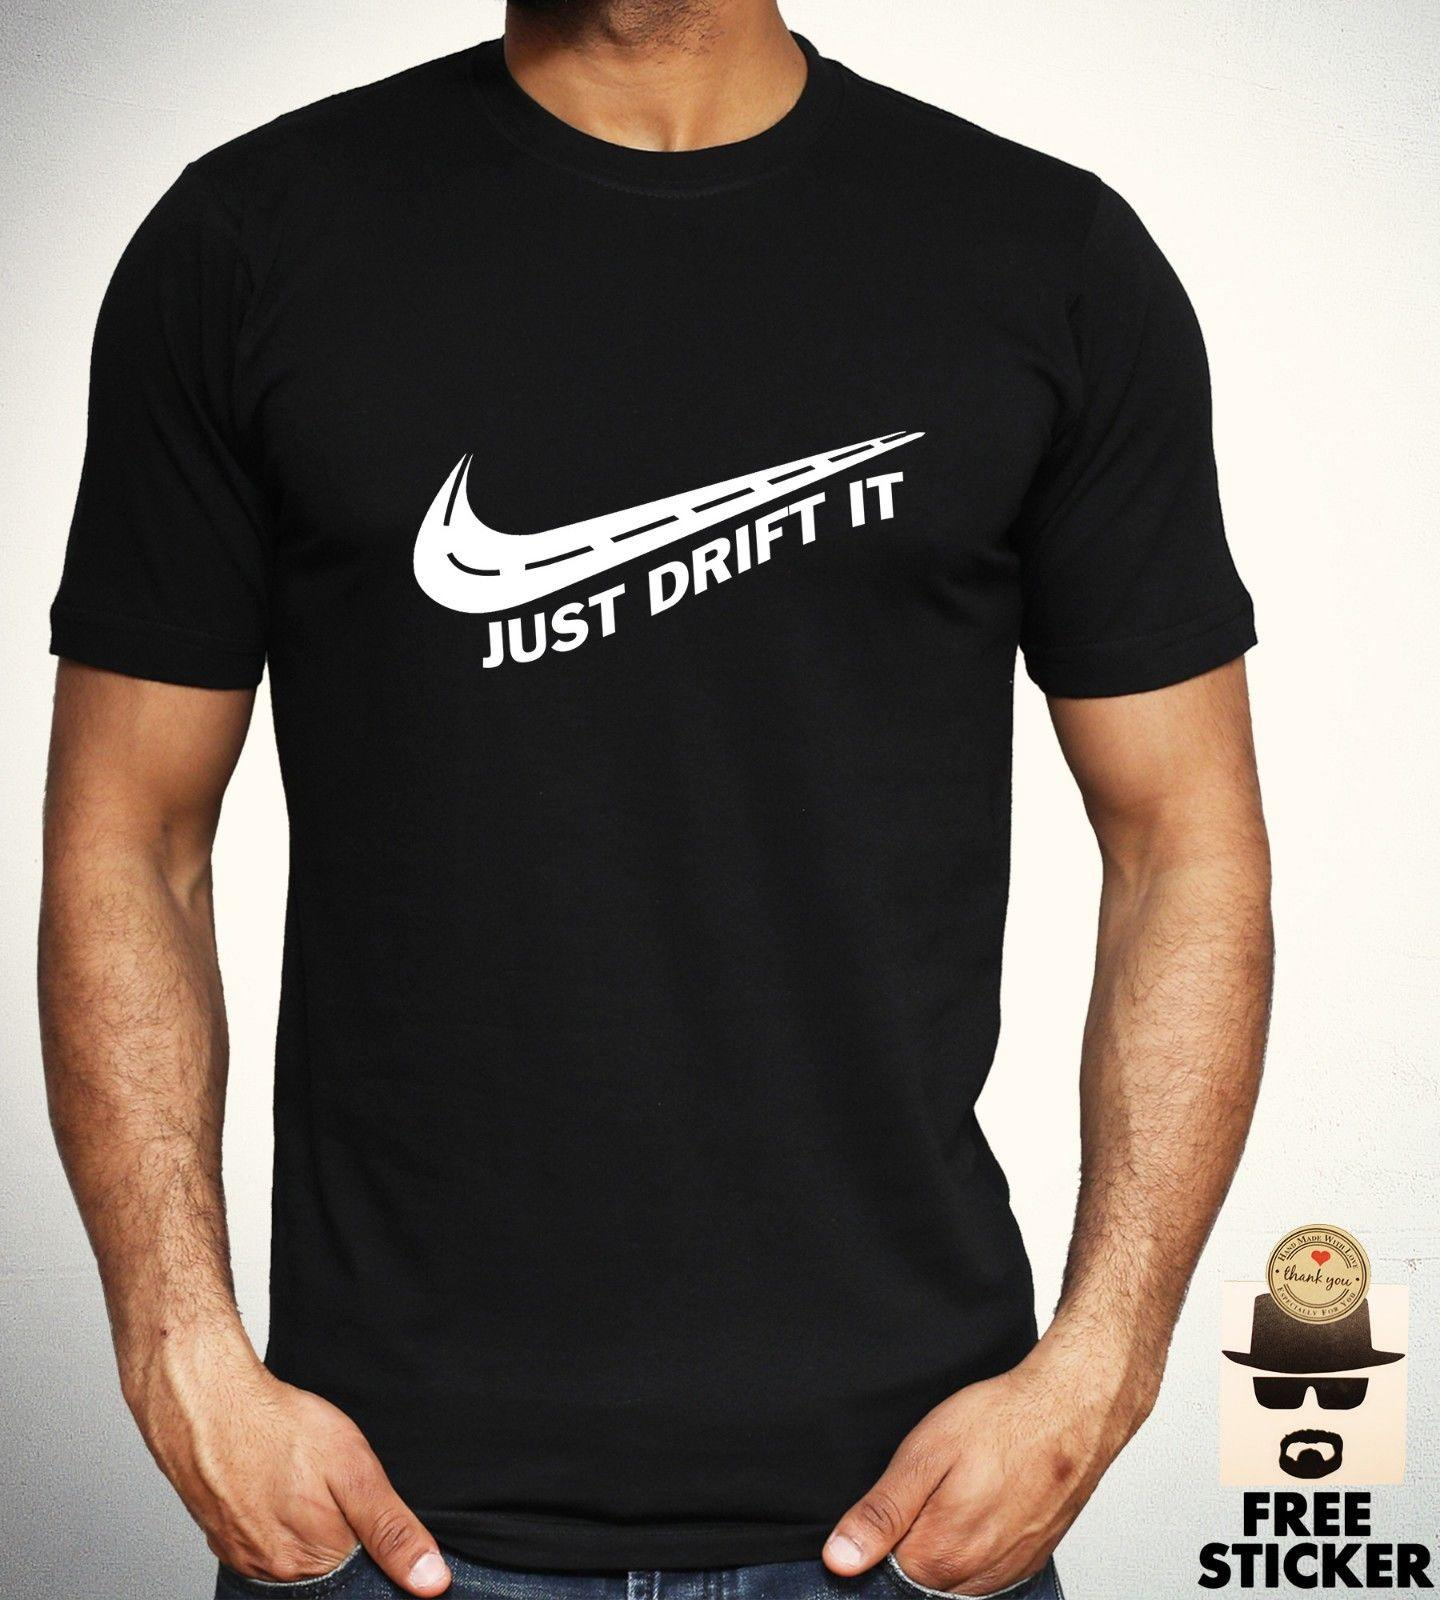 dfe81cf9 Just Drift It T Shirt Funny Parody Tee Cars Driving Tee Gift New Top Adult  Mens New 2018 Summer Fashion Tops Round Neck Tees Designer Tee Best T Shirt  ...